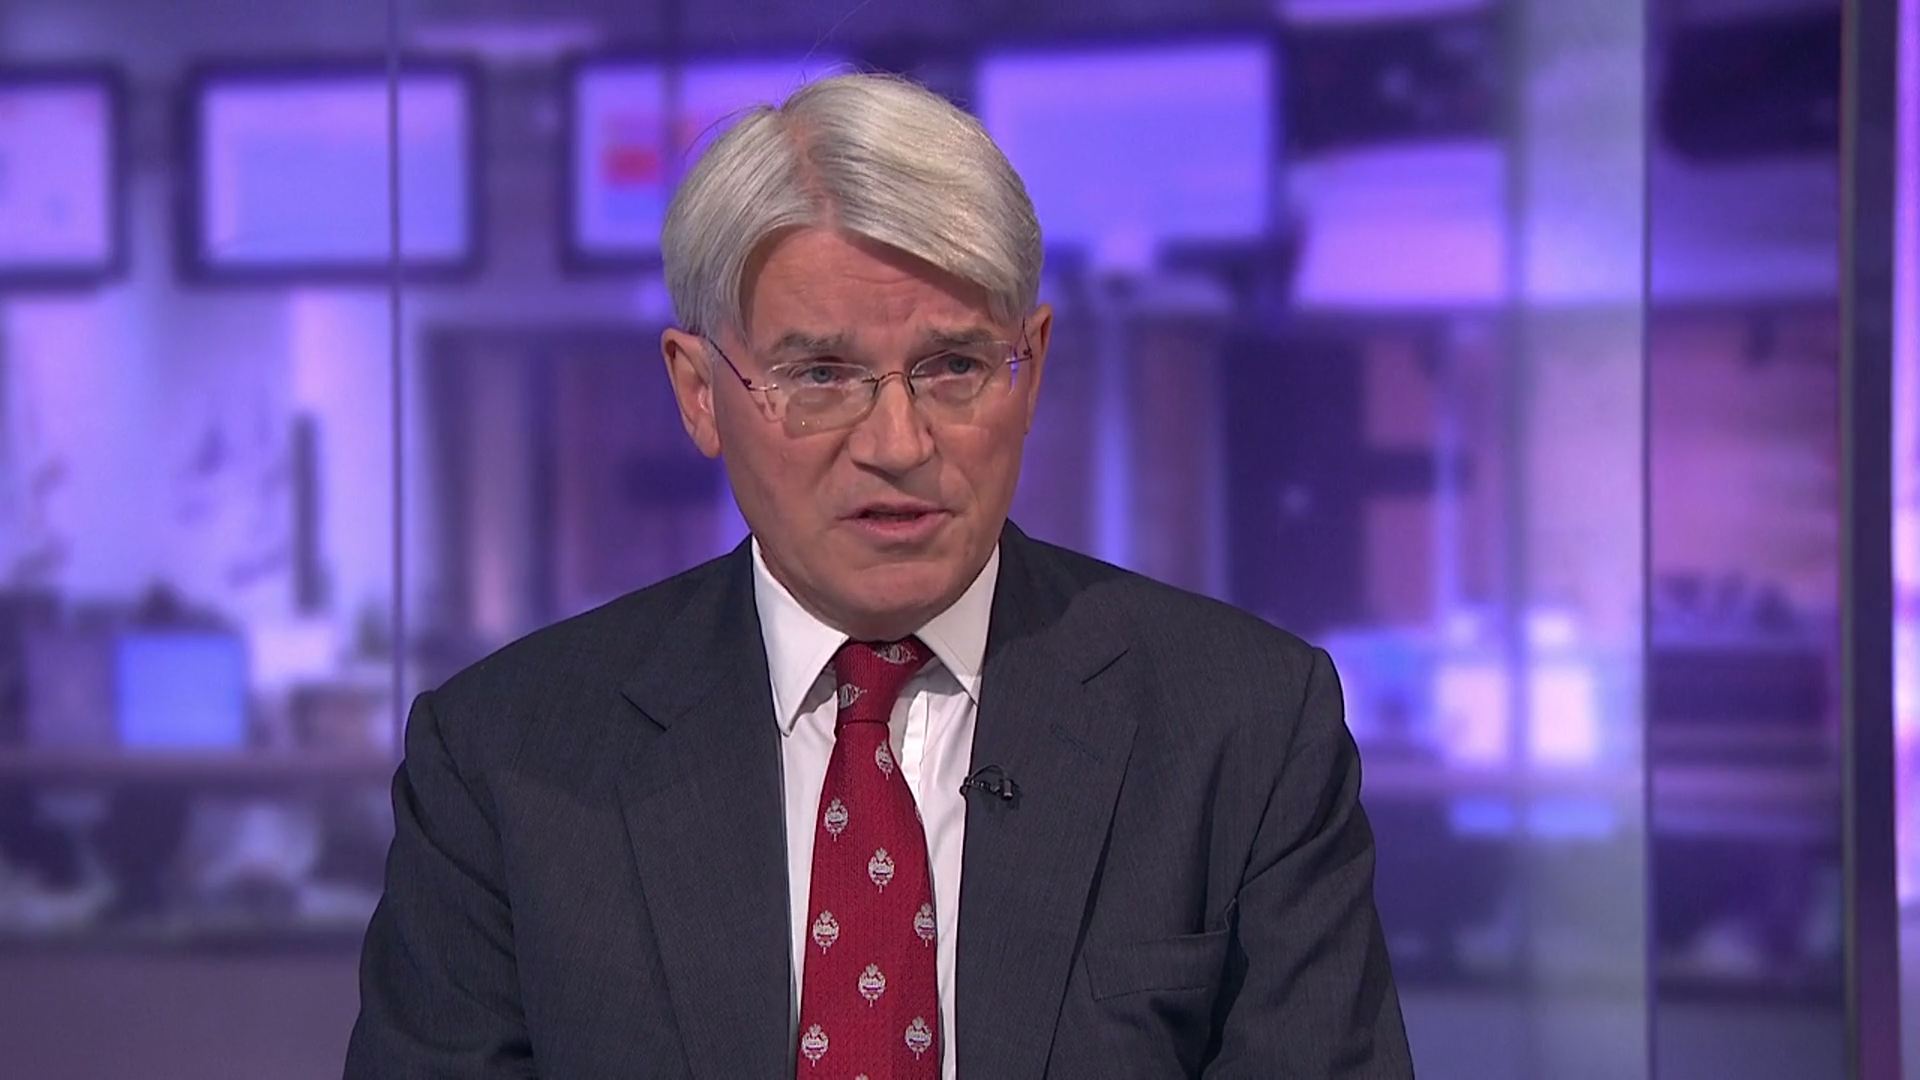 Tory MP Andrew Mitchell on election: 'If we leave by October 31… prospects for Conservative party are very good'